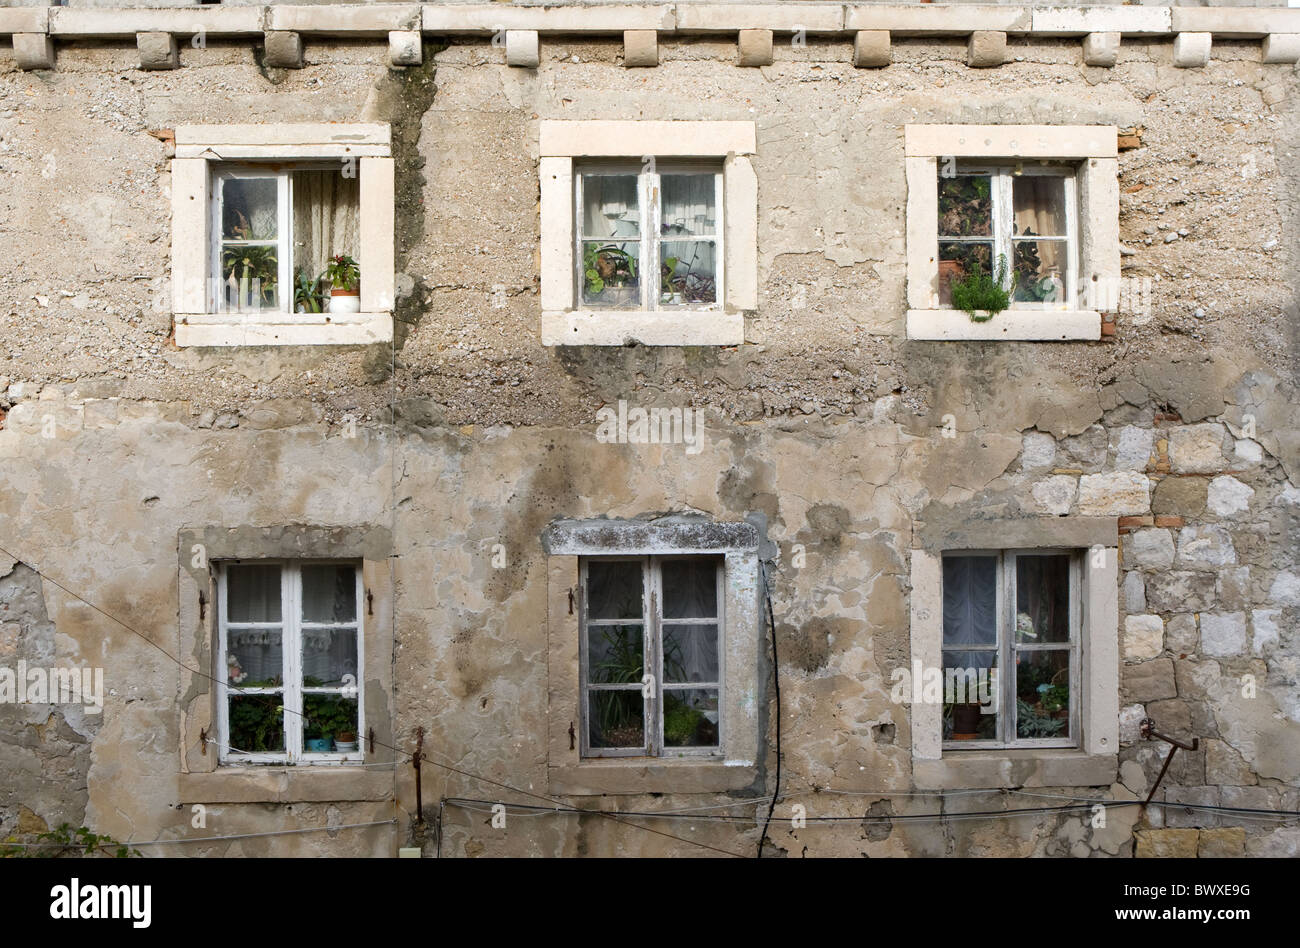 Six windows in the side of a building in Dubrovnik Old Town Stock Photo